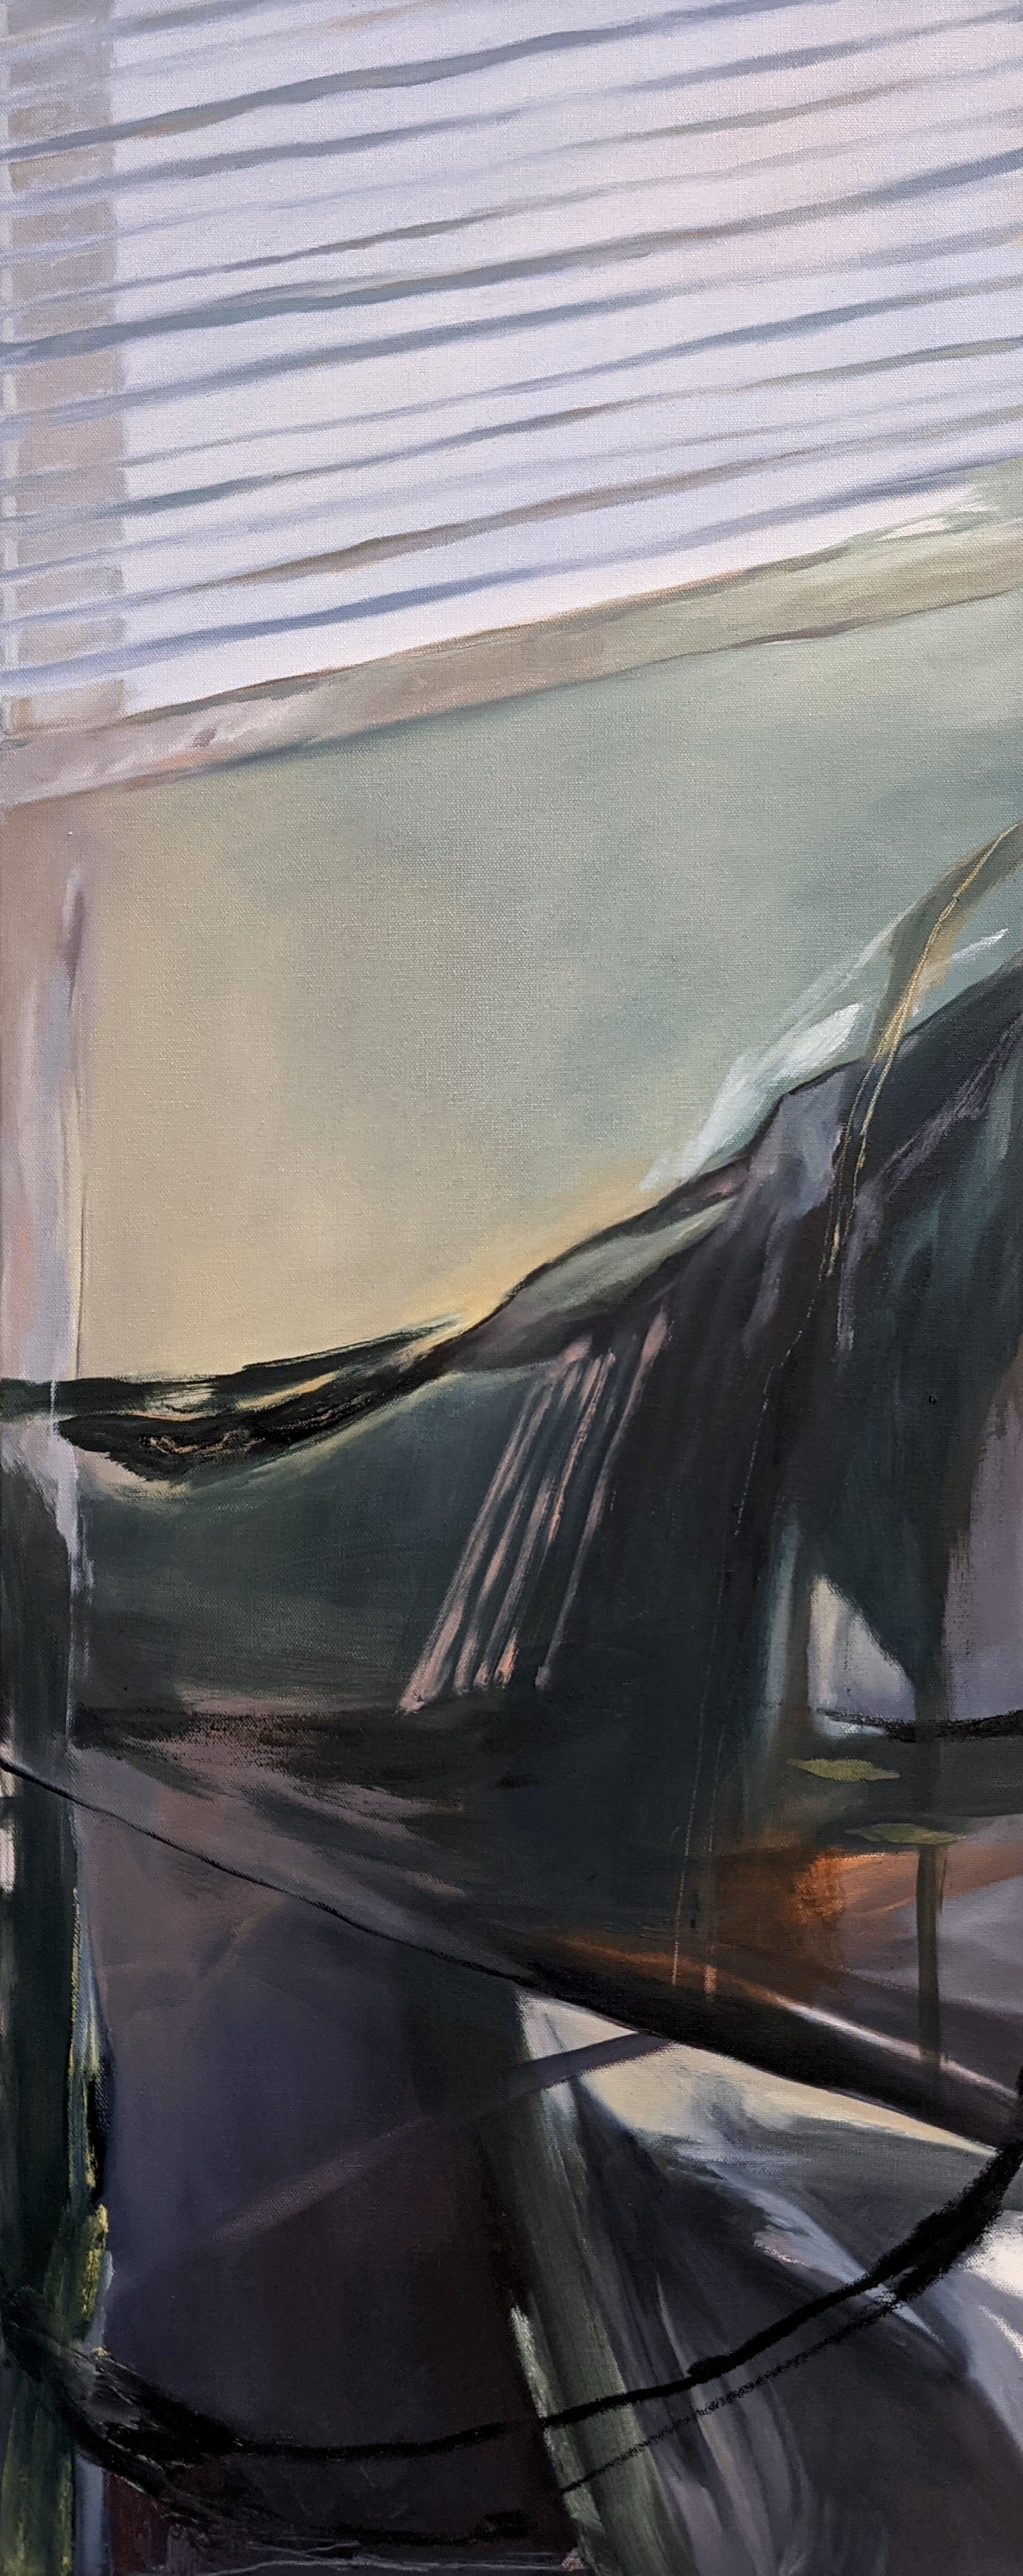 Chenxi Gao, Do Not Fall, Oil on Canvas, April 2021, 40 x 16